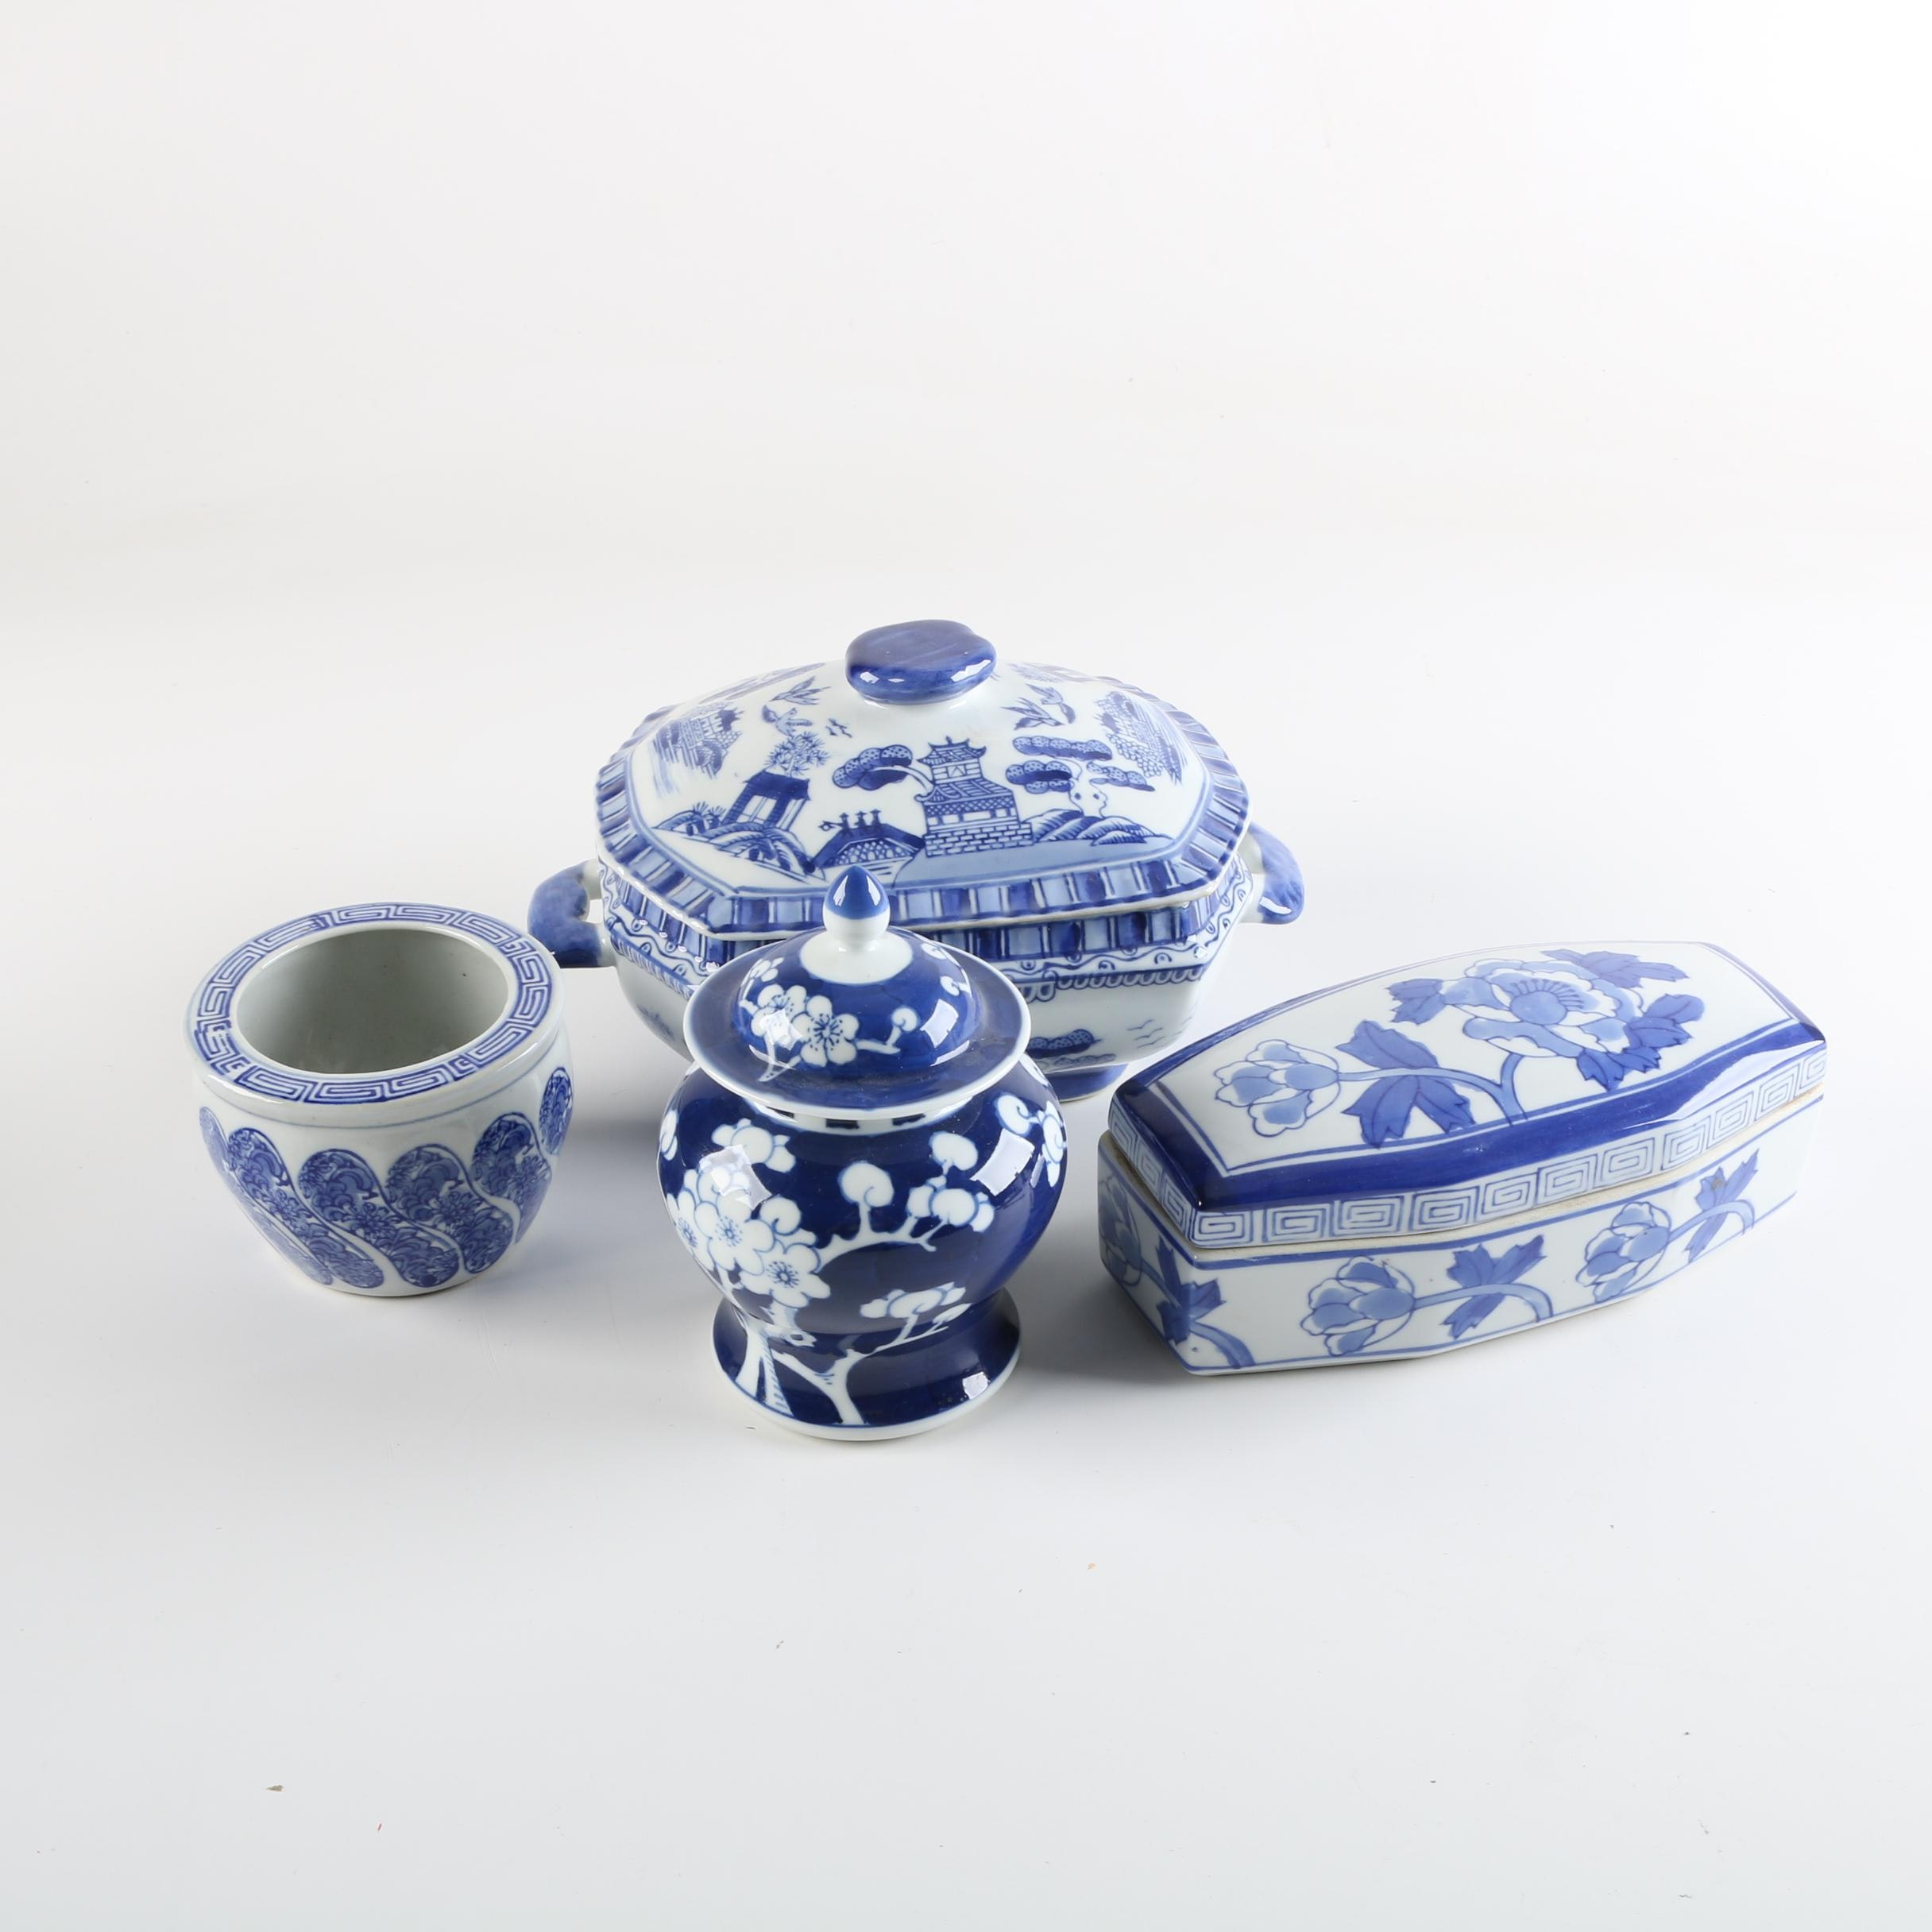 Chinese Blue and White Porcelain Lidded Containers and Planter